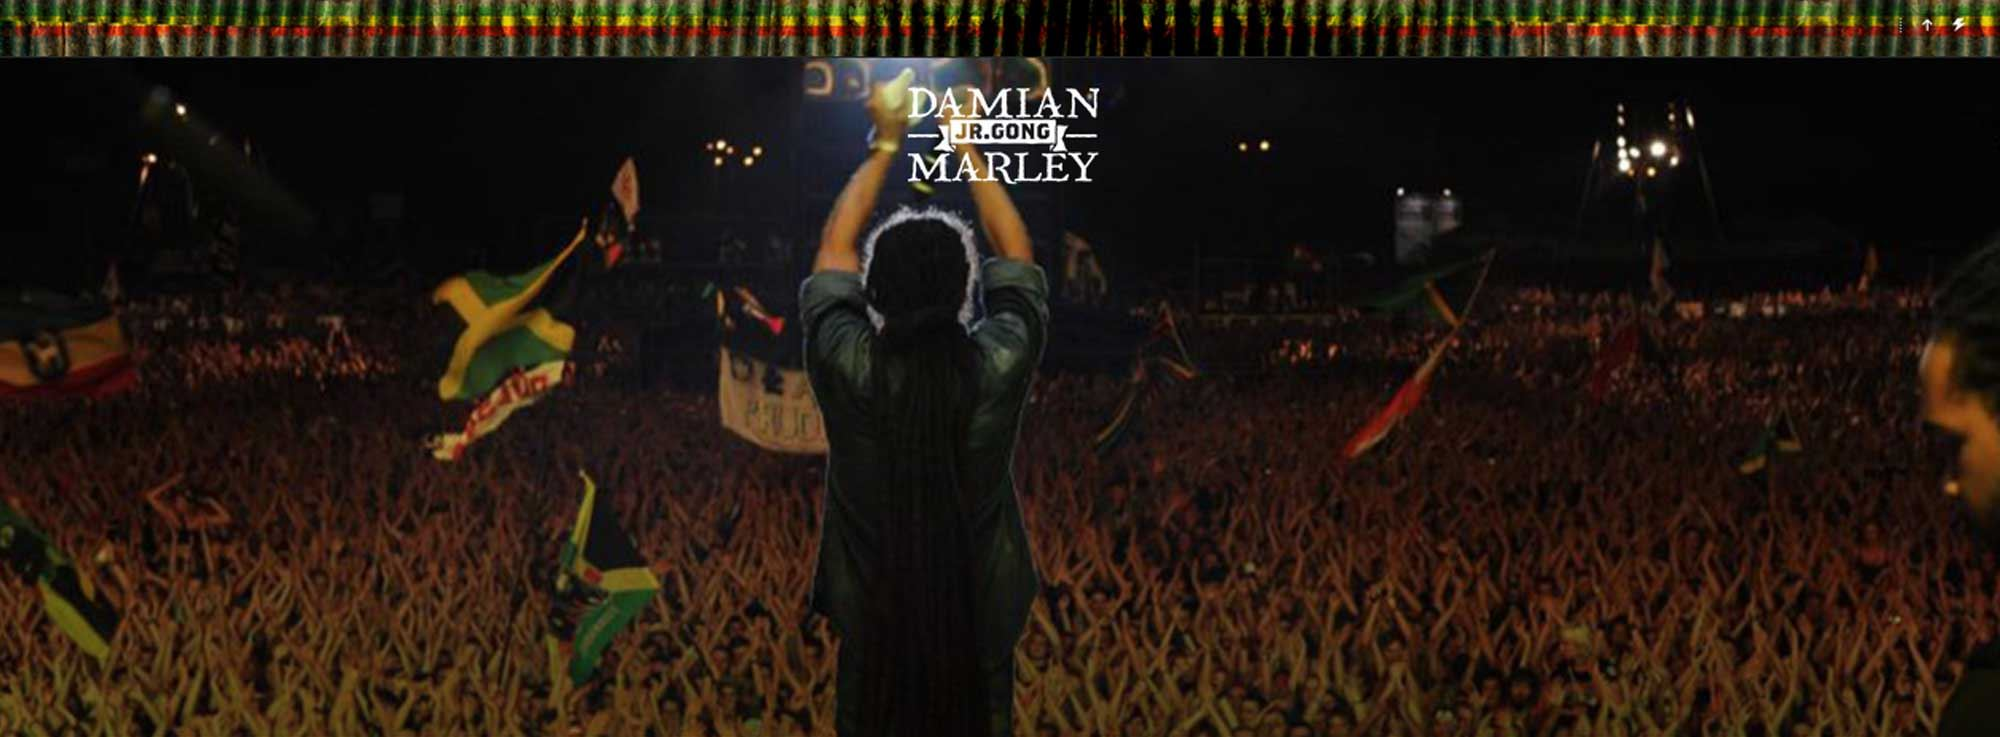 Lecce: Damian Marley in concerto